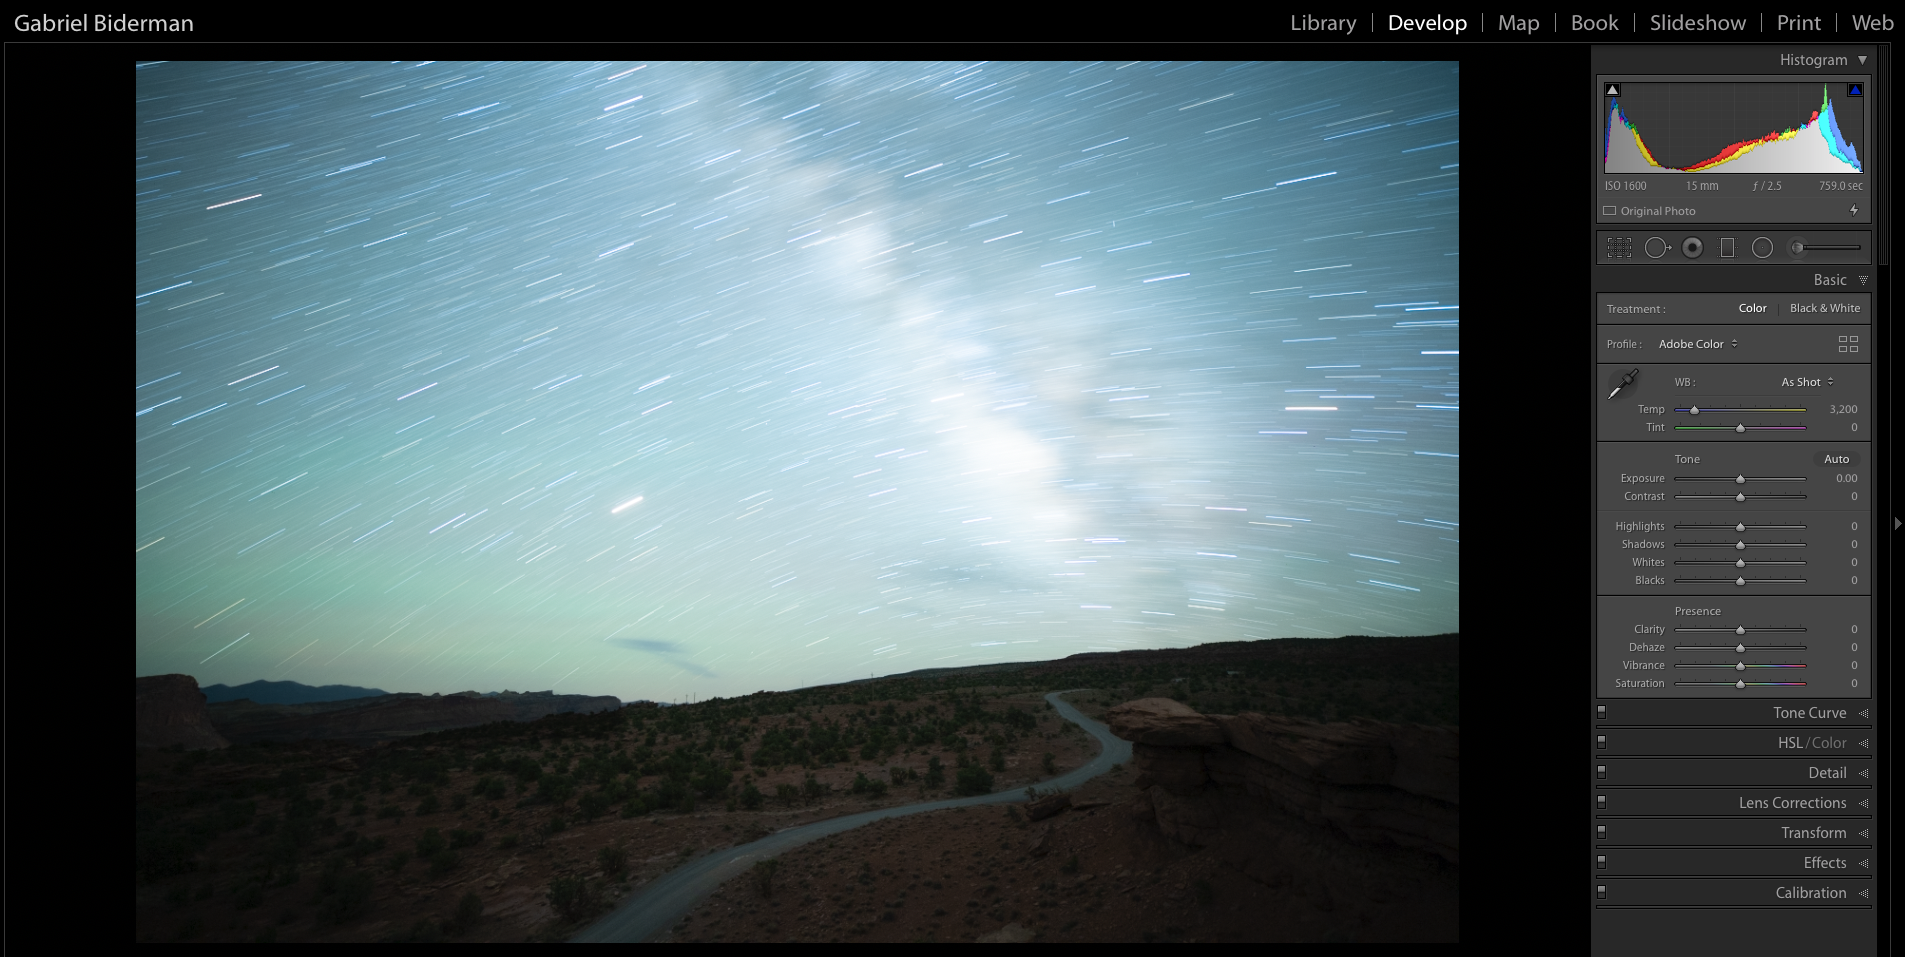 Figure 2. Nikon D5 with an Irix 15mm f/2.4 lens. 13 minutes, f/2.5, ISO 1600.